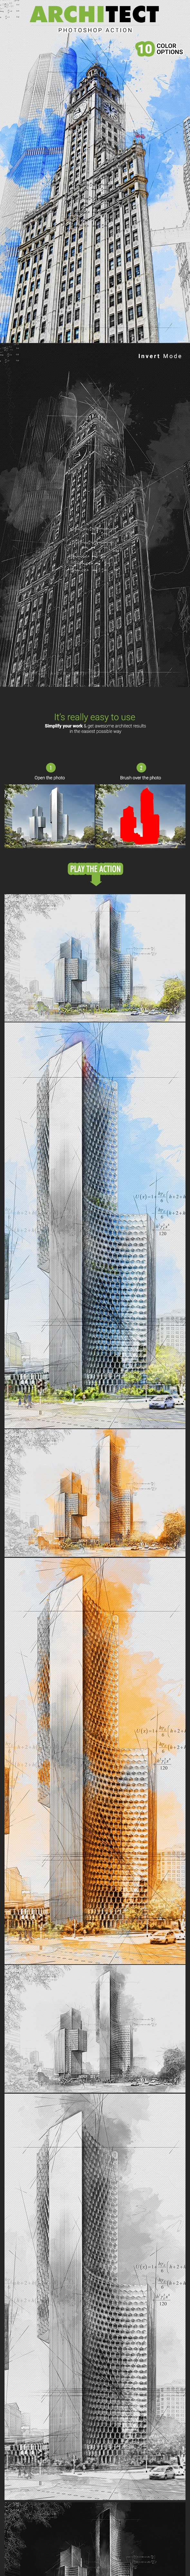 Architect Photoshop Action - Photo Effects Actions